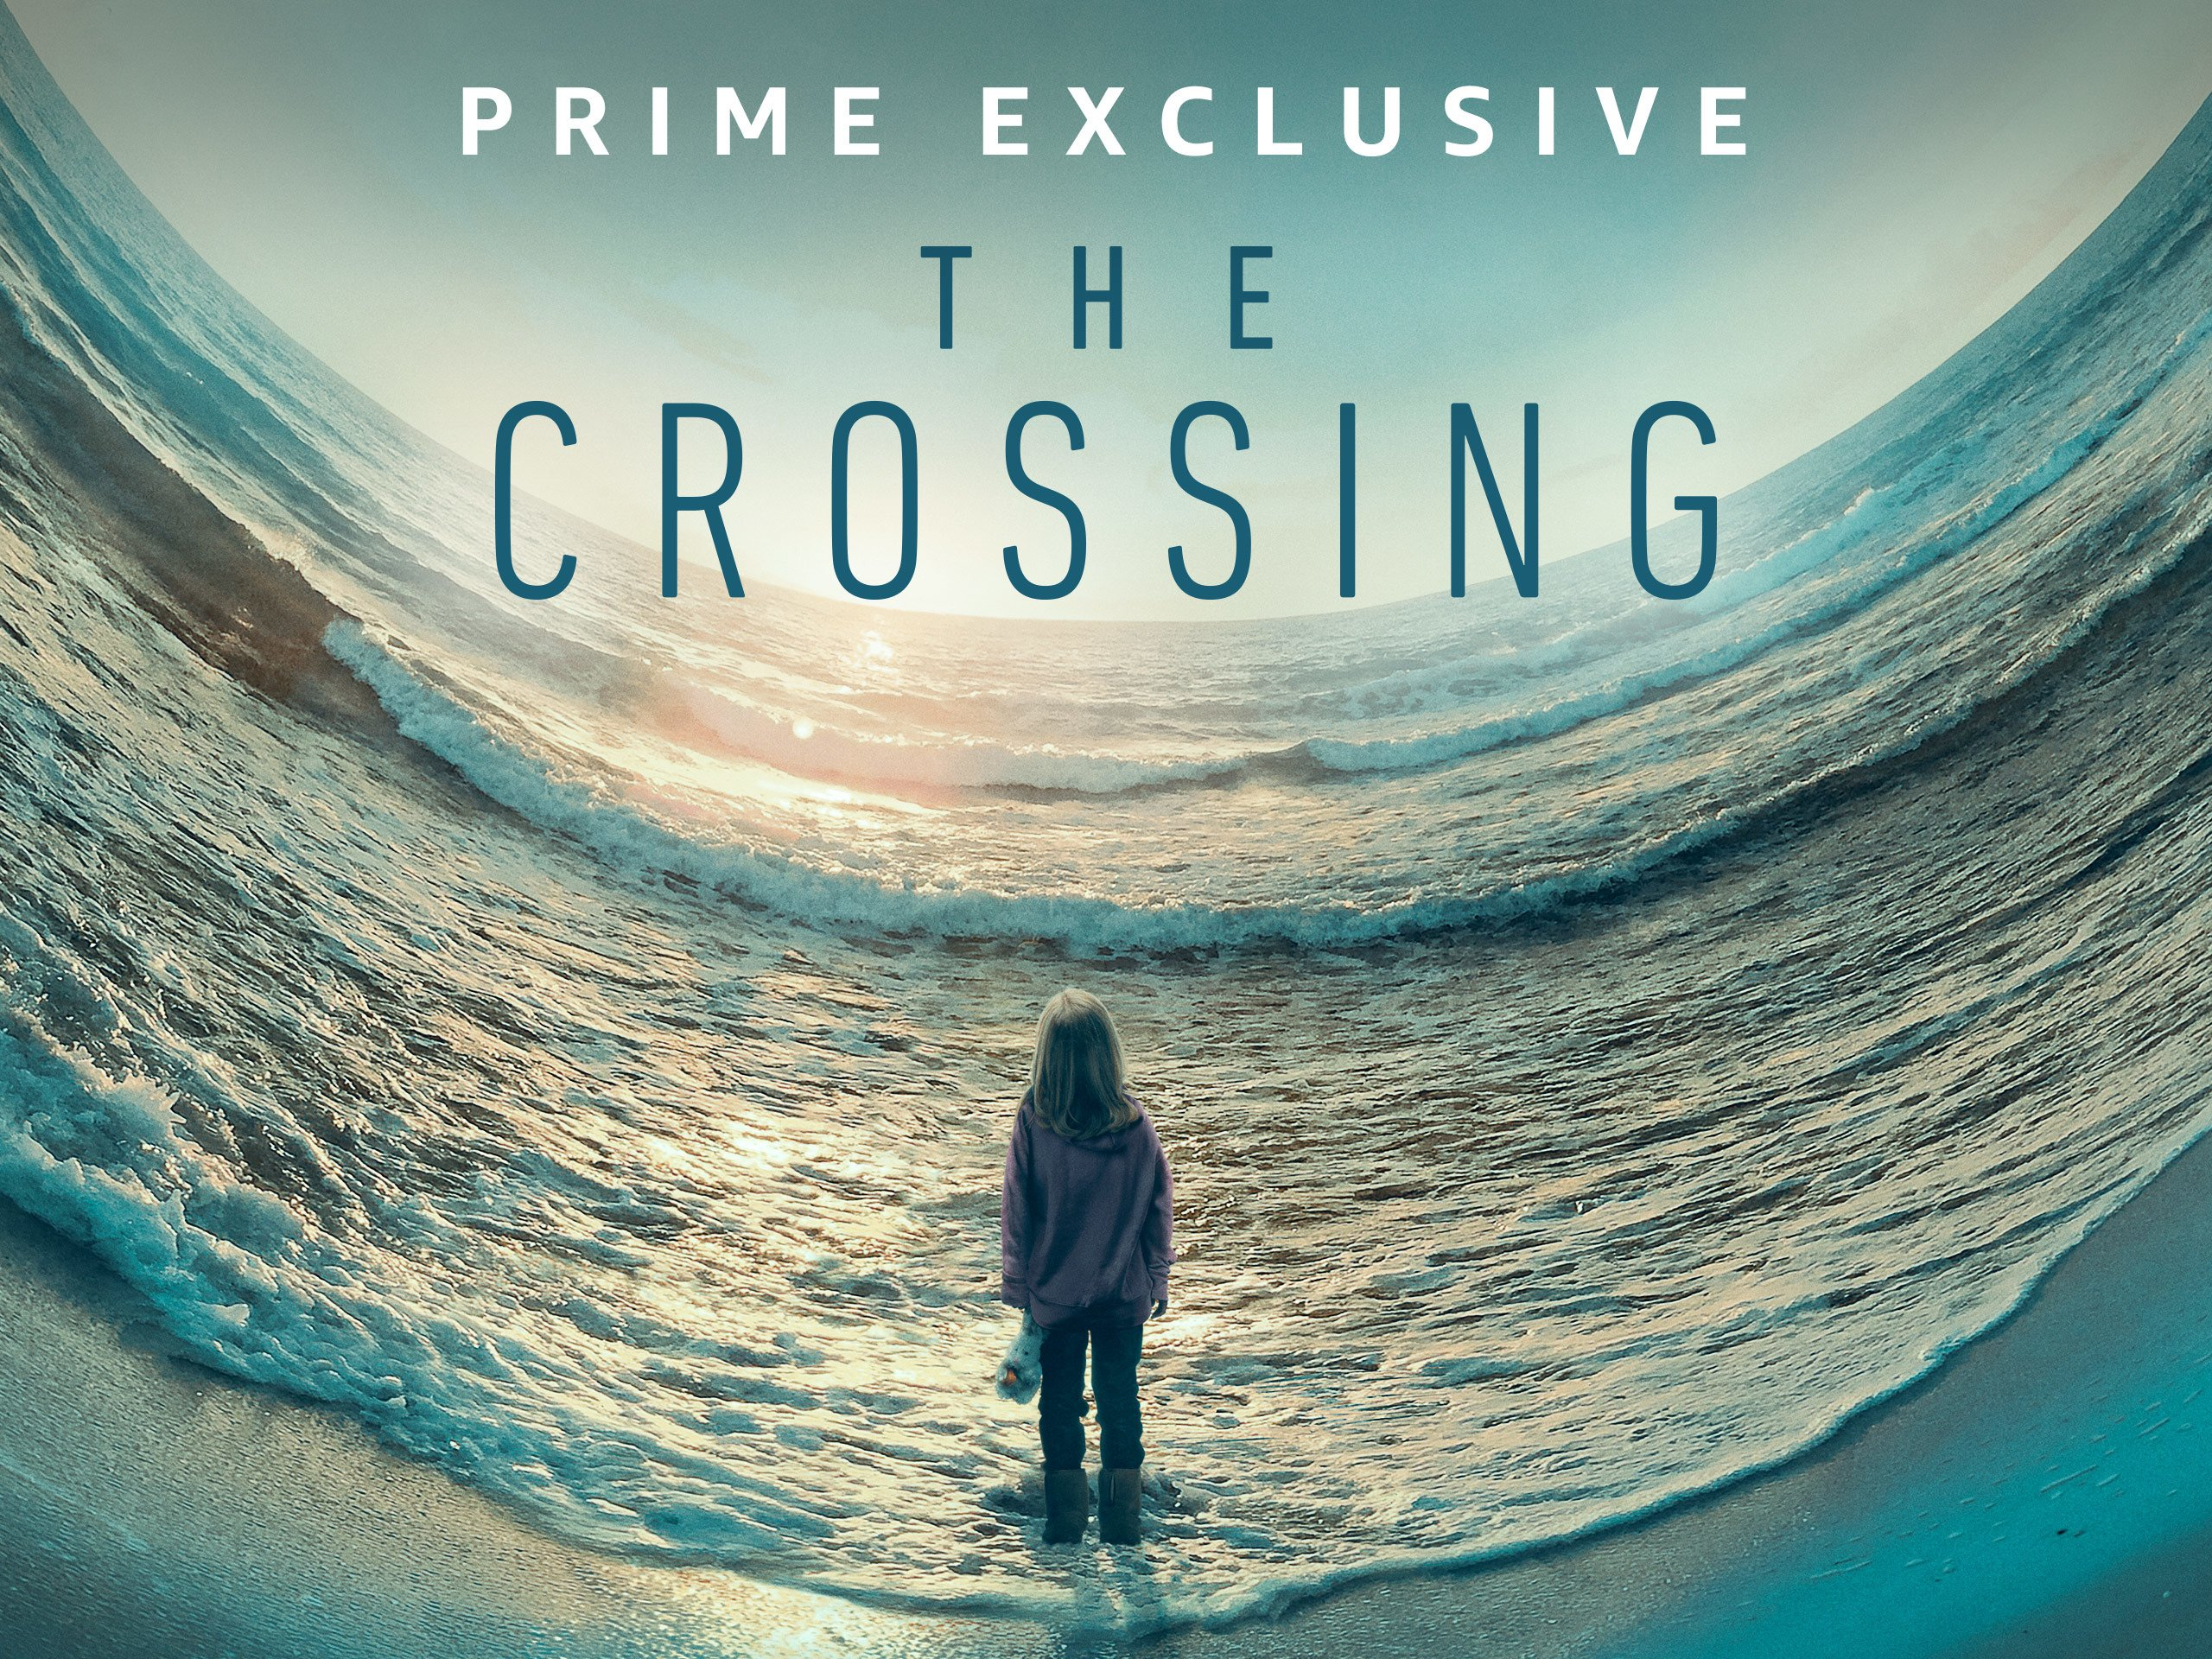 The Crossing Season 1 Episode 7 Subtitle (English Srt) Download